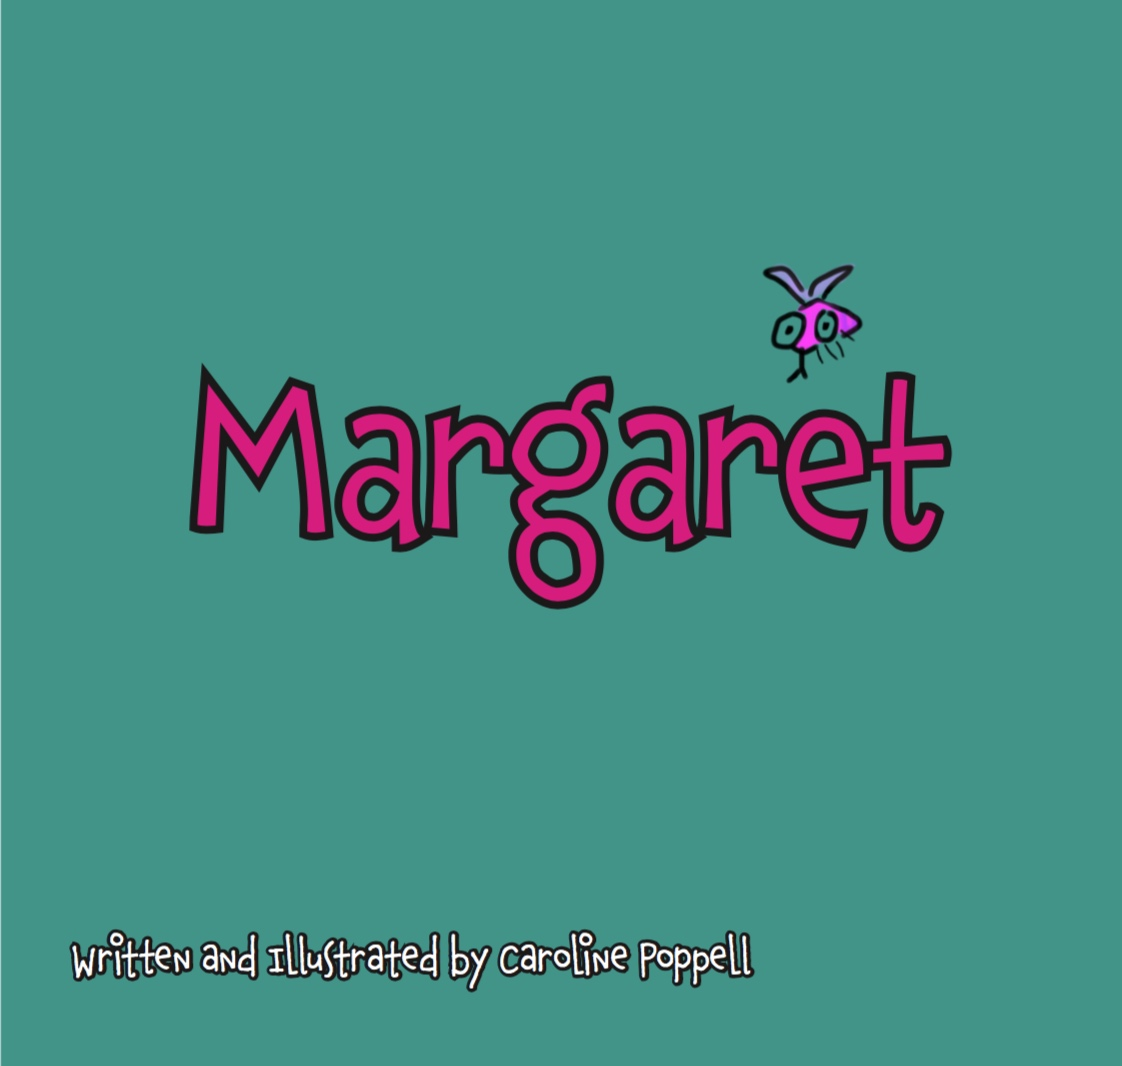 margaret - Today is Margaret the mosquito's birthday and she is ready to celebrate! There is one thing she wants for her birthday—a big kiss from all of her favorite people. As children follow Margaret along her journey, they will get a glimpse of the world through a mosquito's eyes and learn lots of cool mosquito facts in English and Haitian Creole.